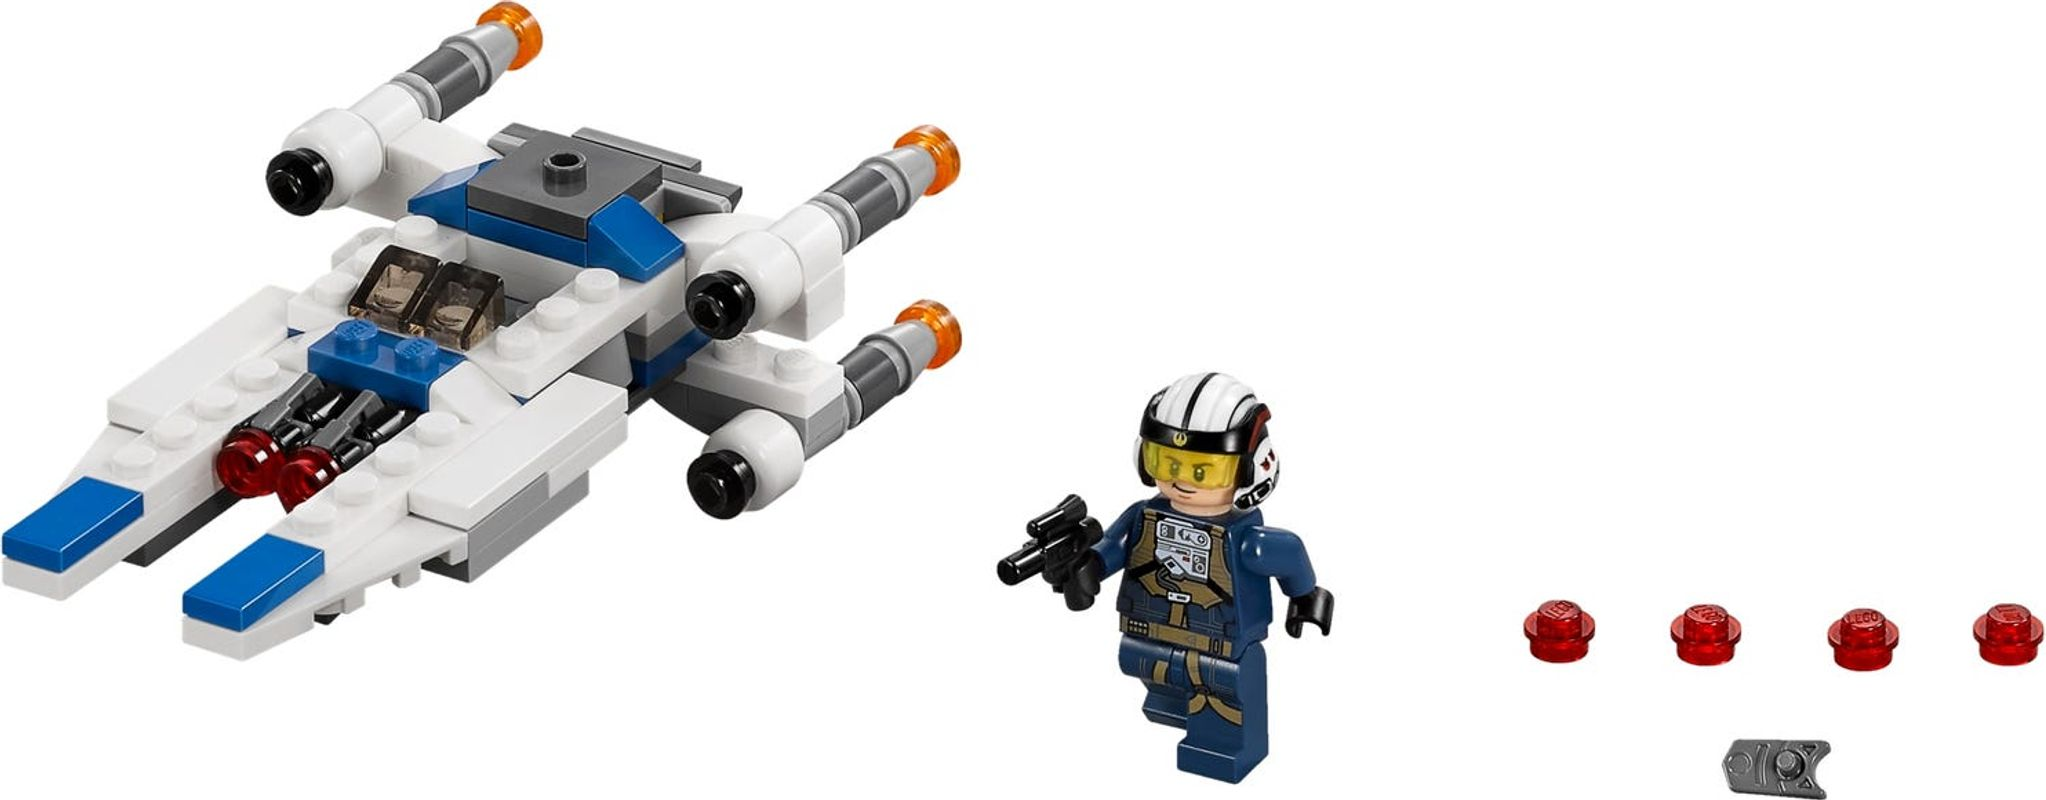 U-Wing™ Microfighter components